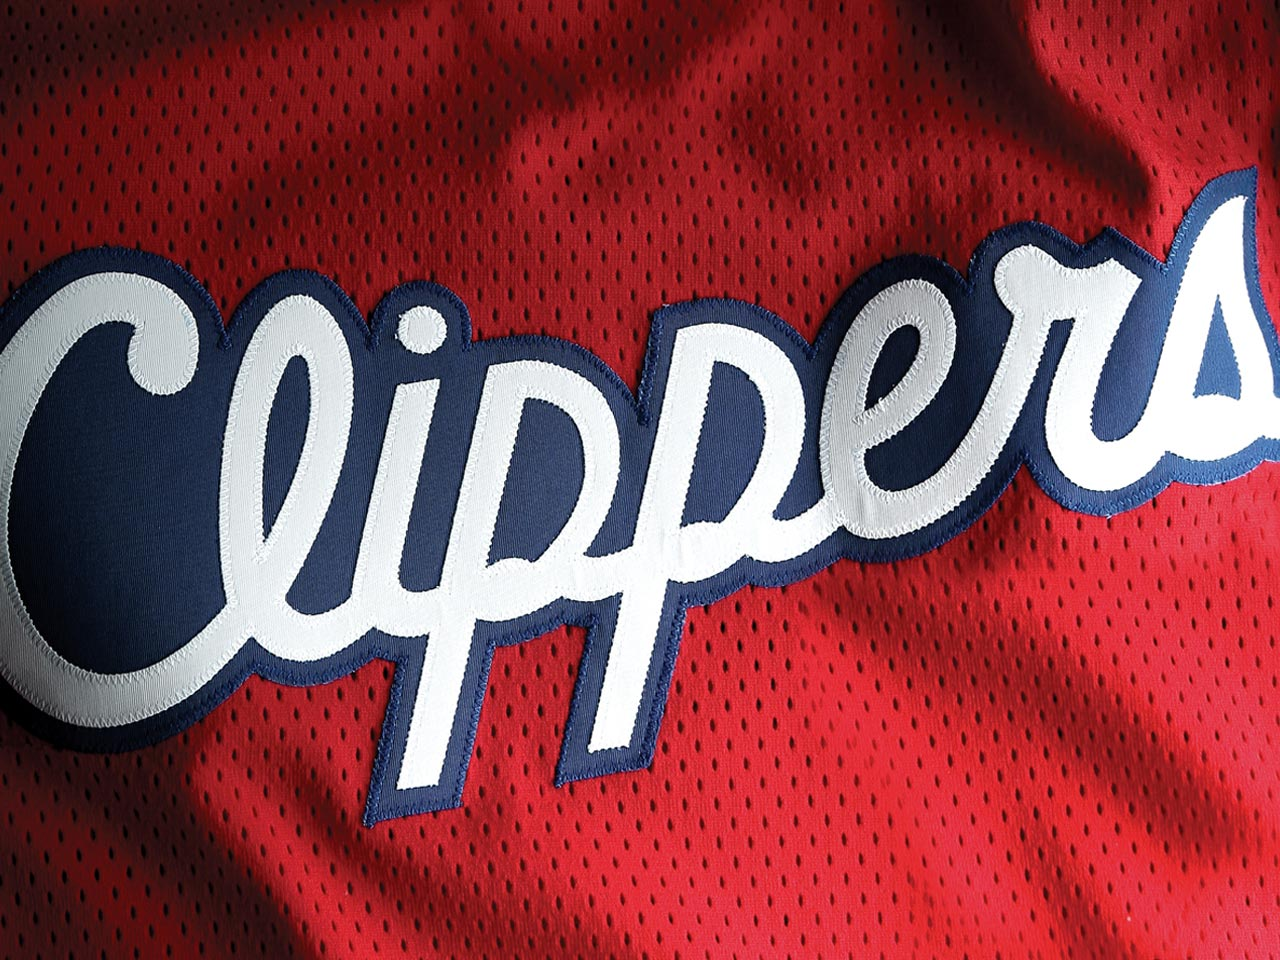 clippers44